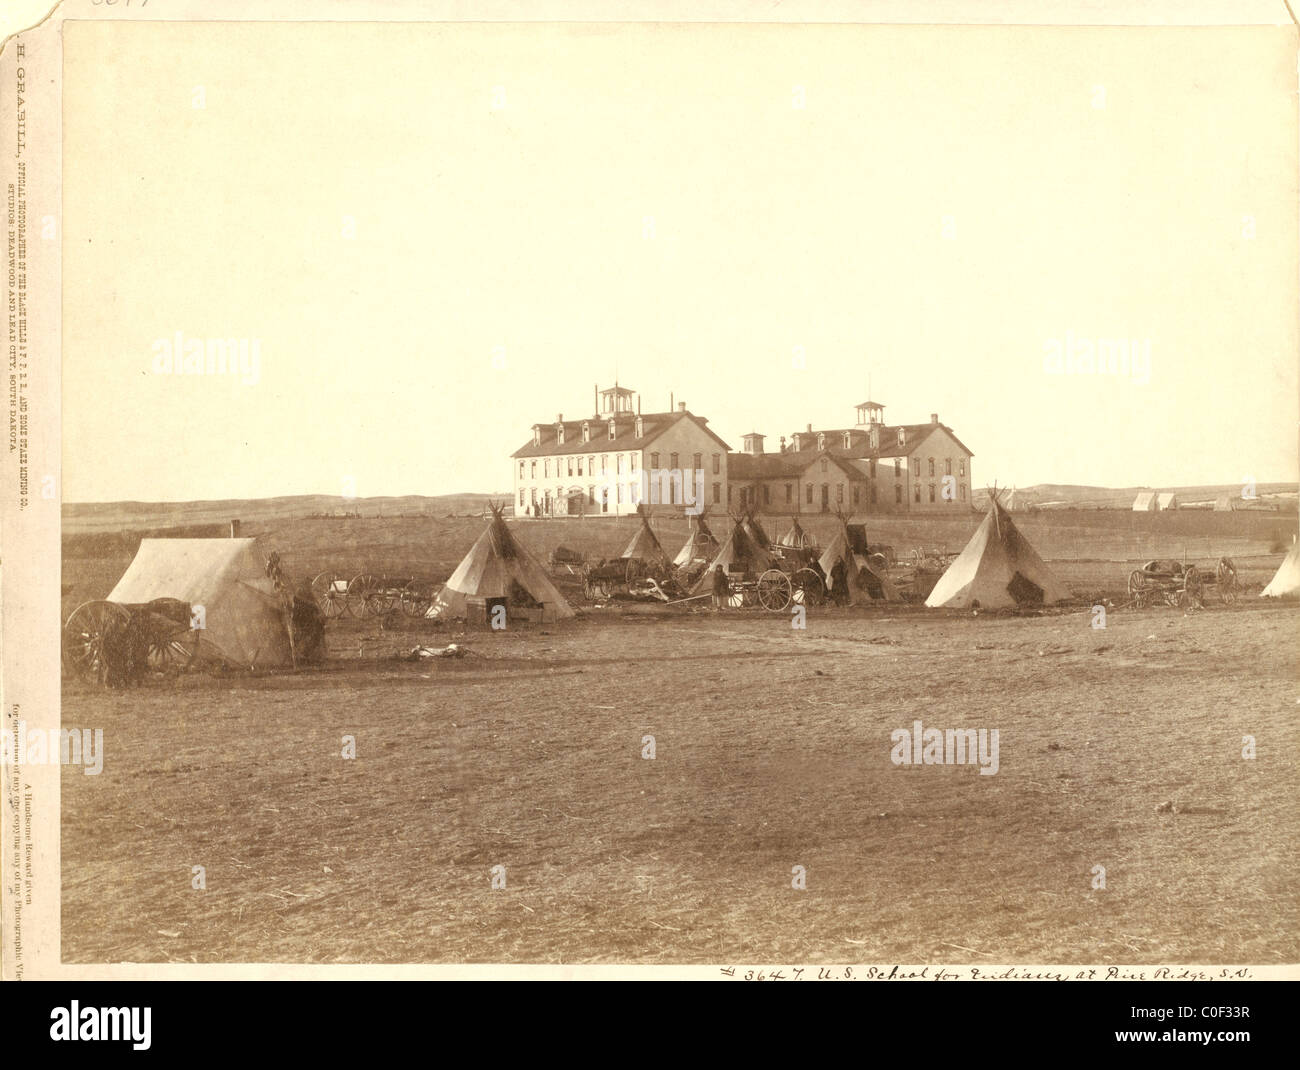 U.S. School for Indians at Pine Ridge, South Dakota with  Small Oglala tipi camp in front 1891 - Stock Image